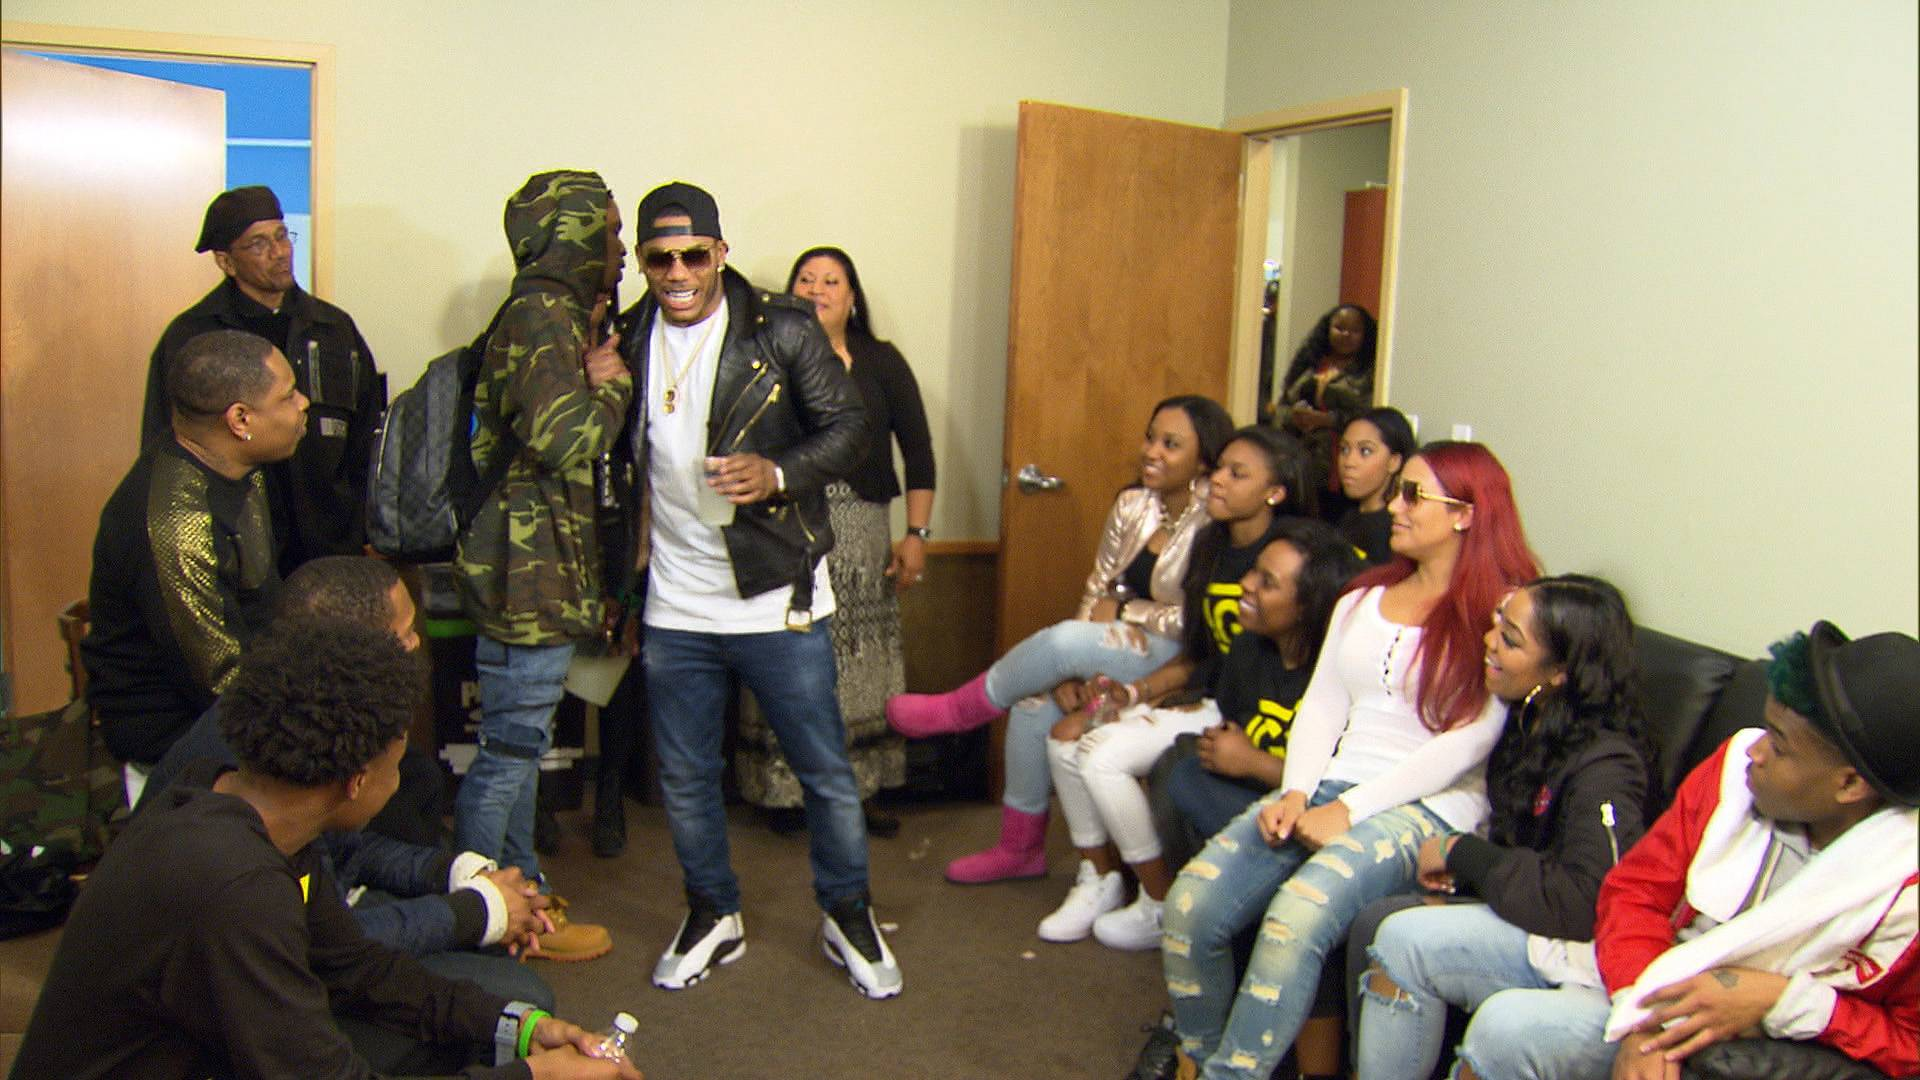 Much Love - Nelly shows his nephew much love and support.(Photo: BET)